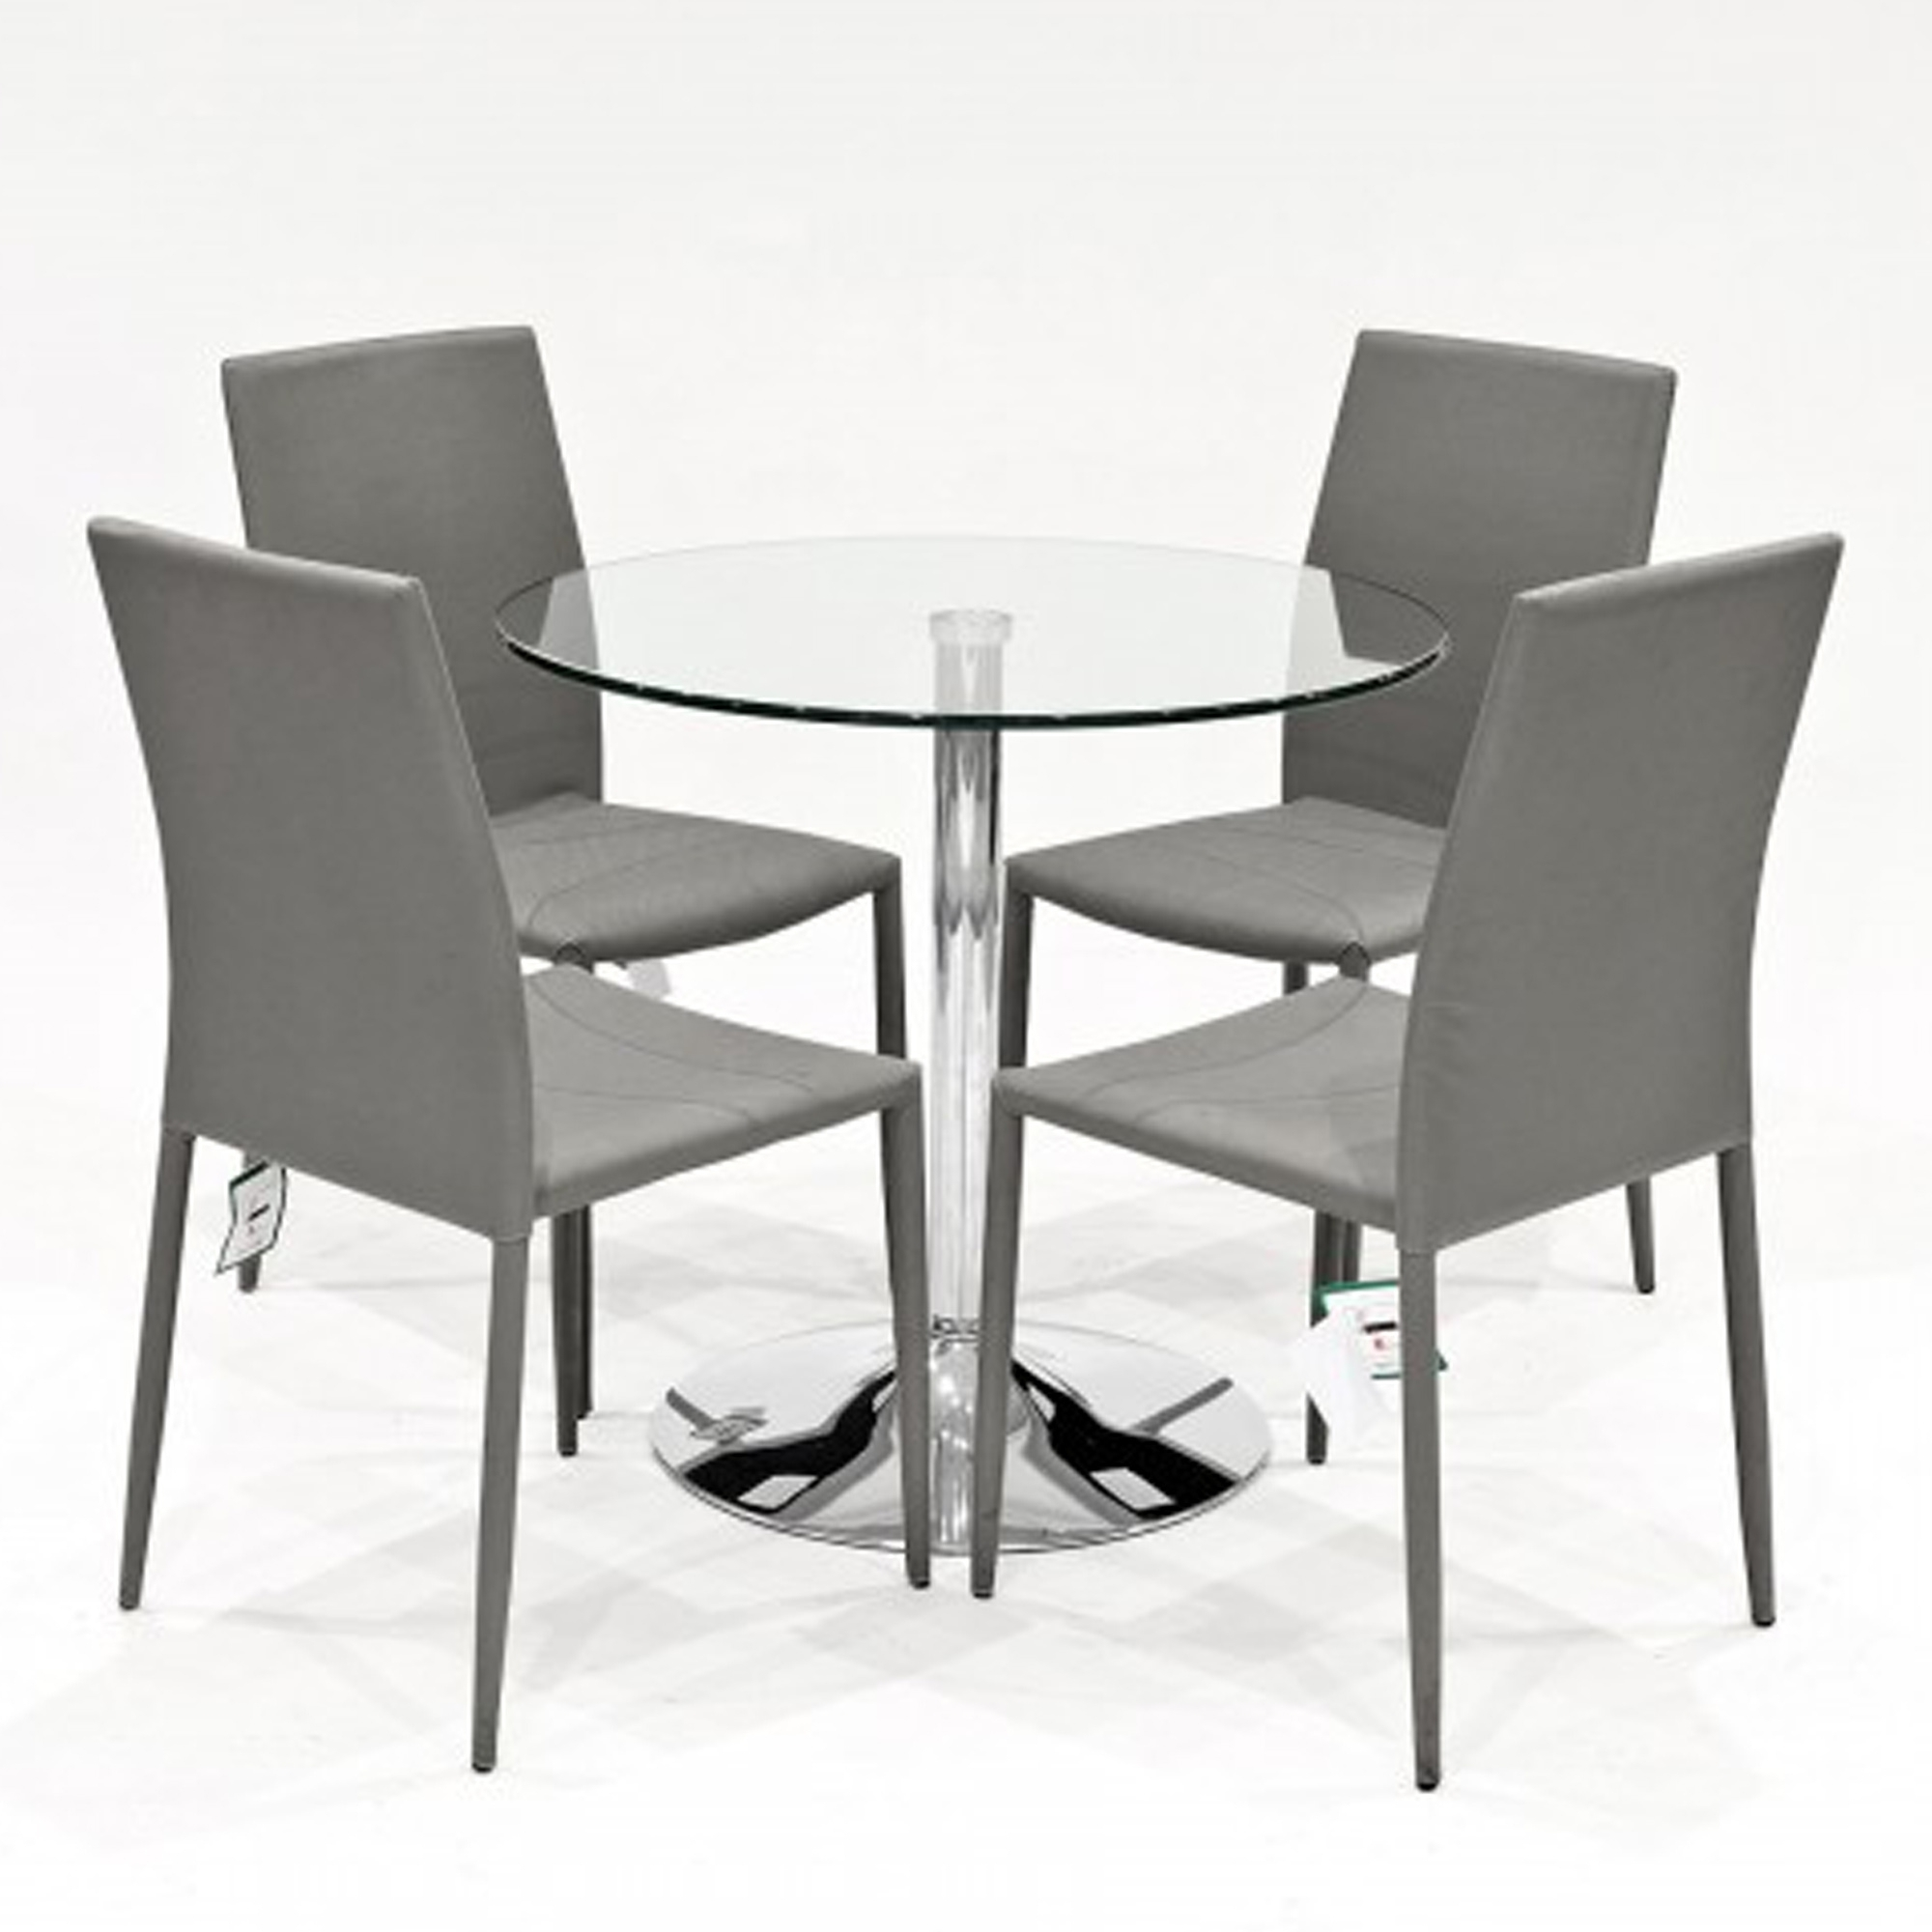 Clear Glass Dining Tables And Chairs Pertaining To Most Recently Released Grey Selina Clear Glass Dining Set (View 17 of 25)